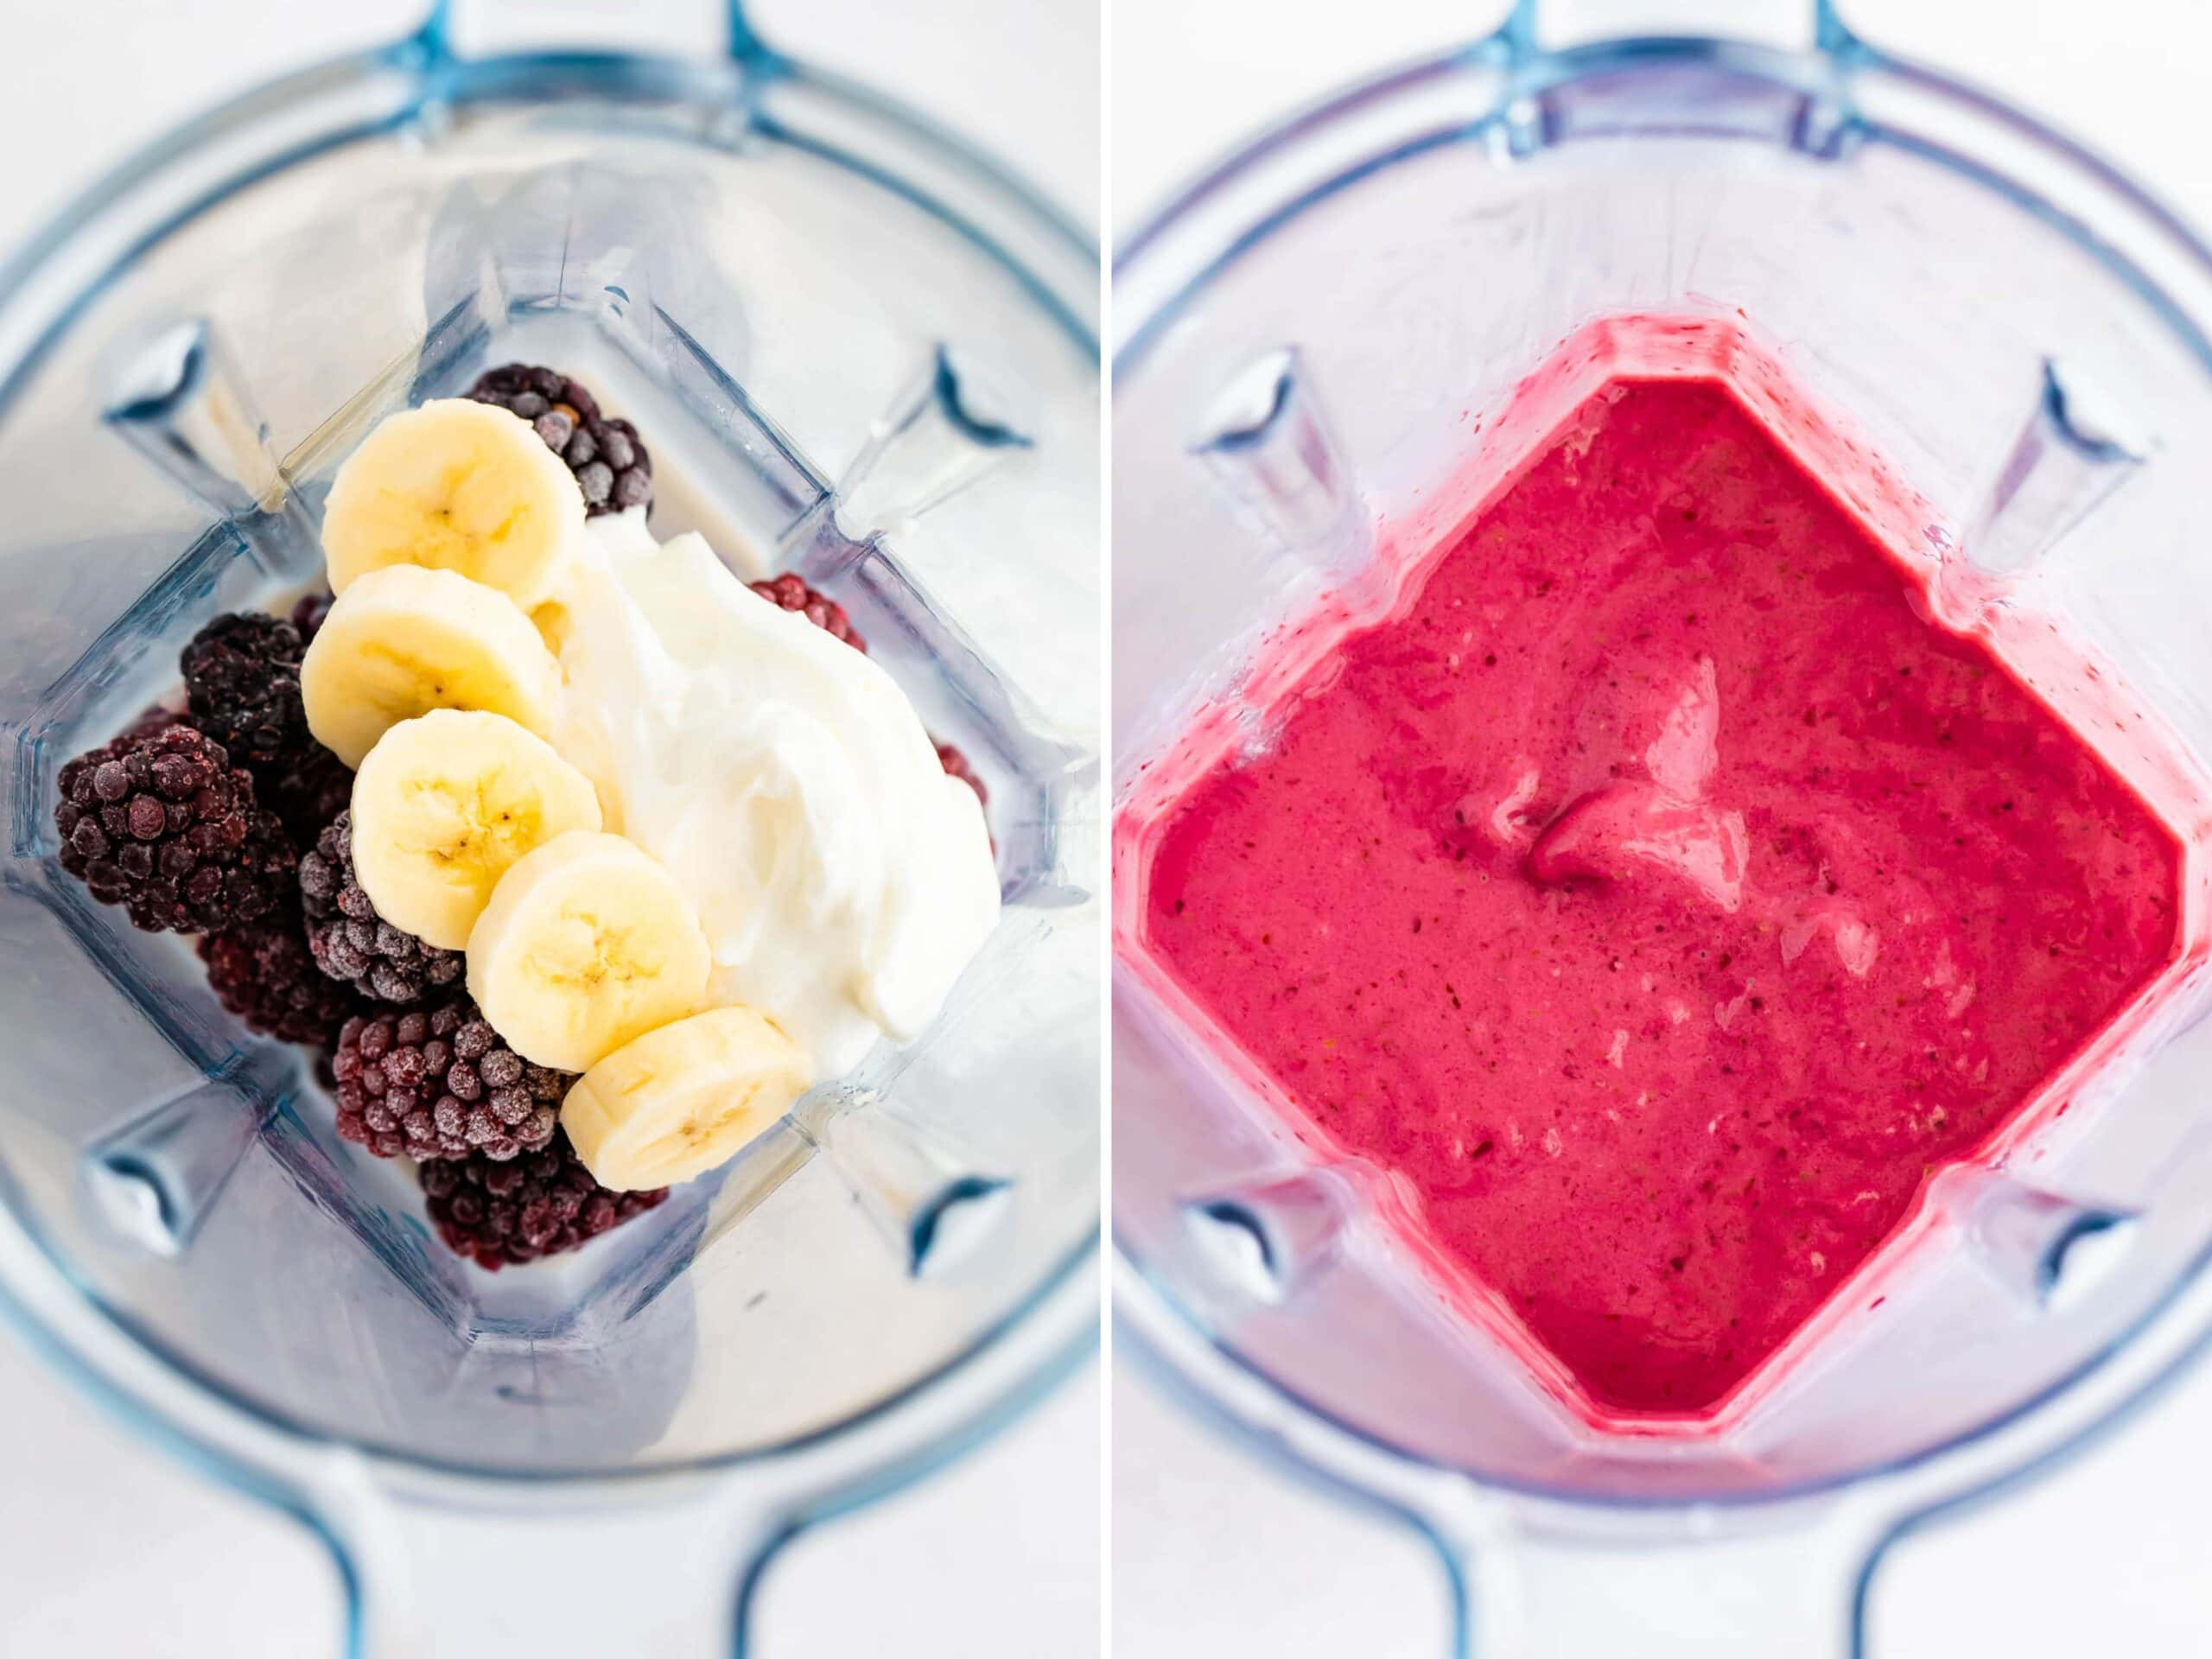 Side by side photo of a blackberry smoothie before and after being blended.